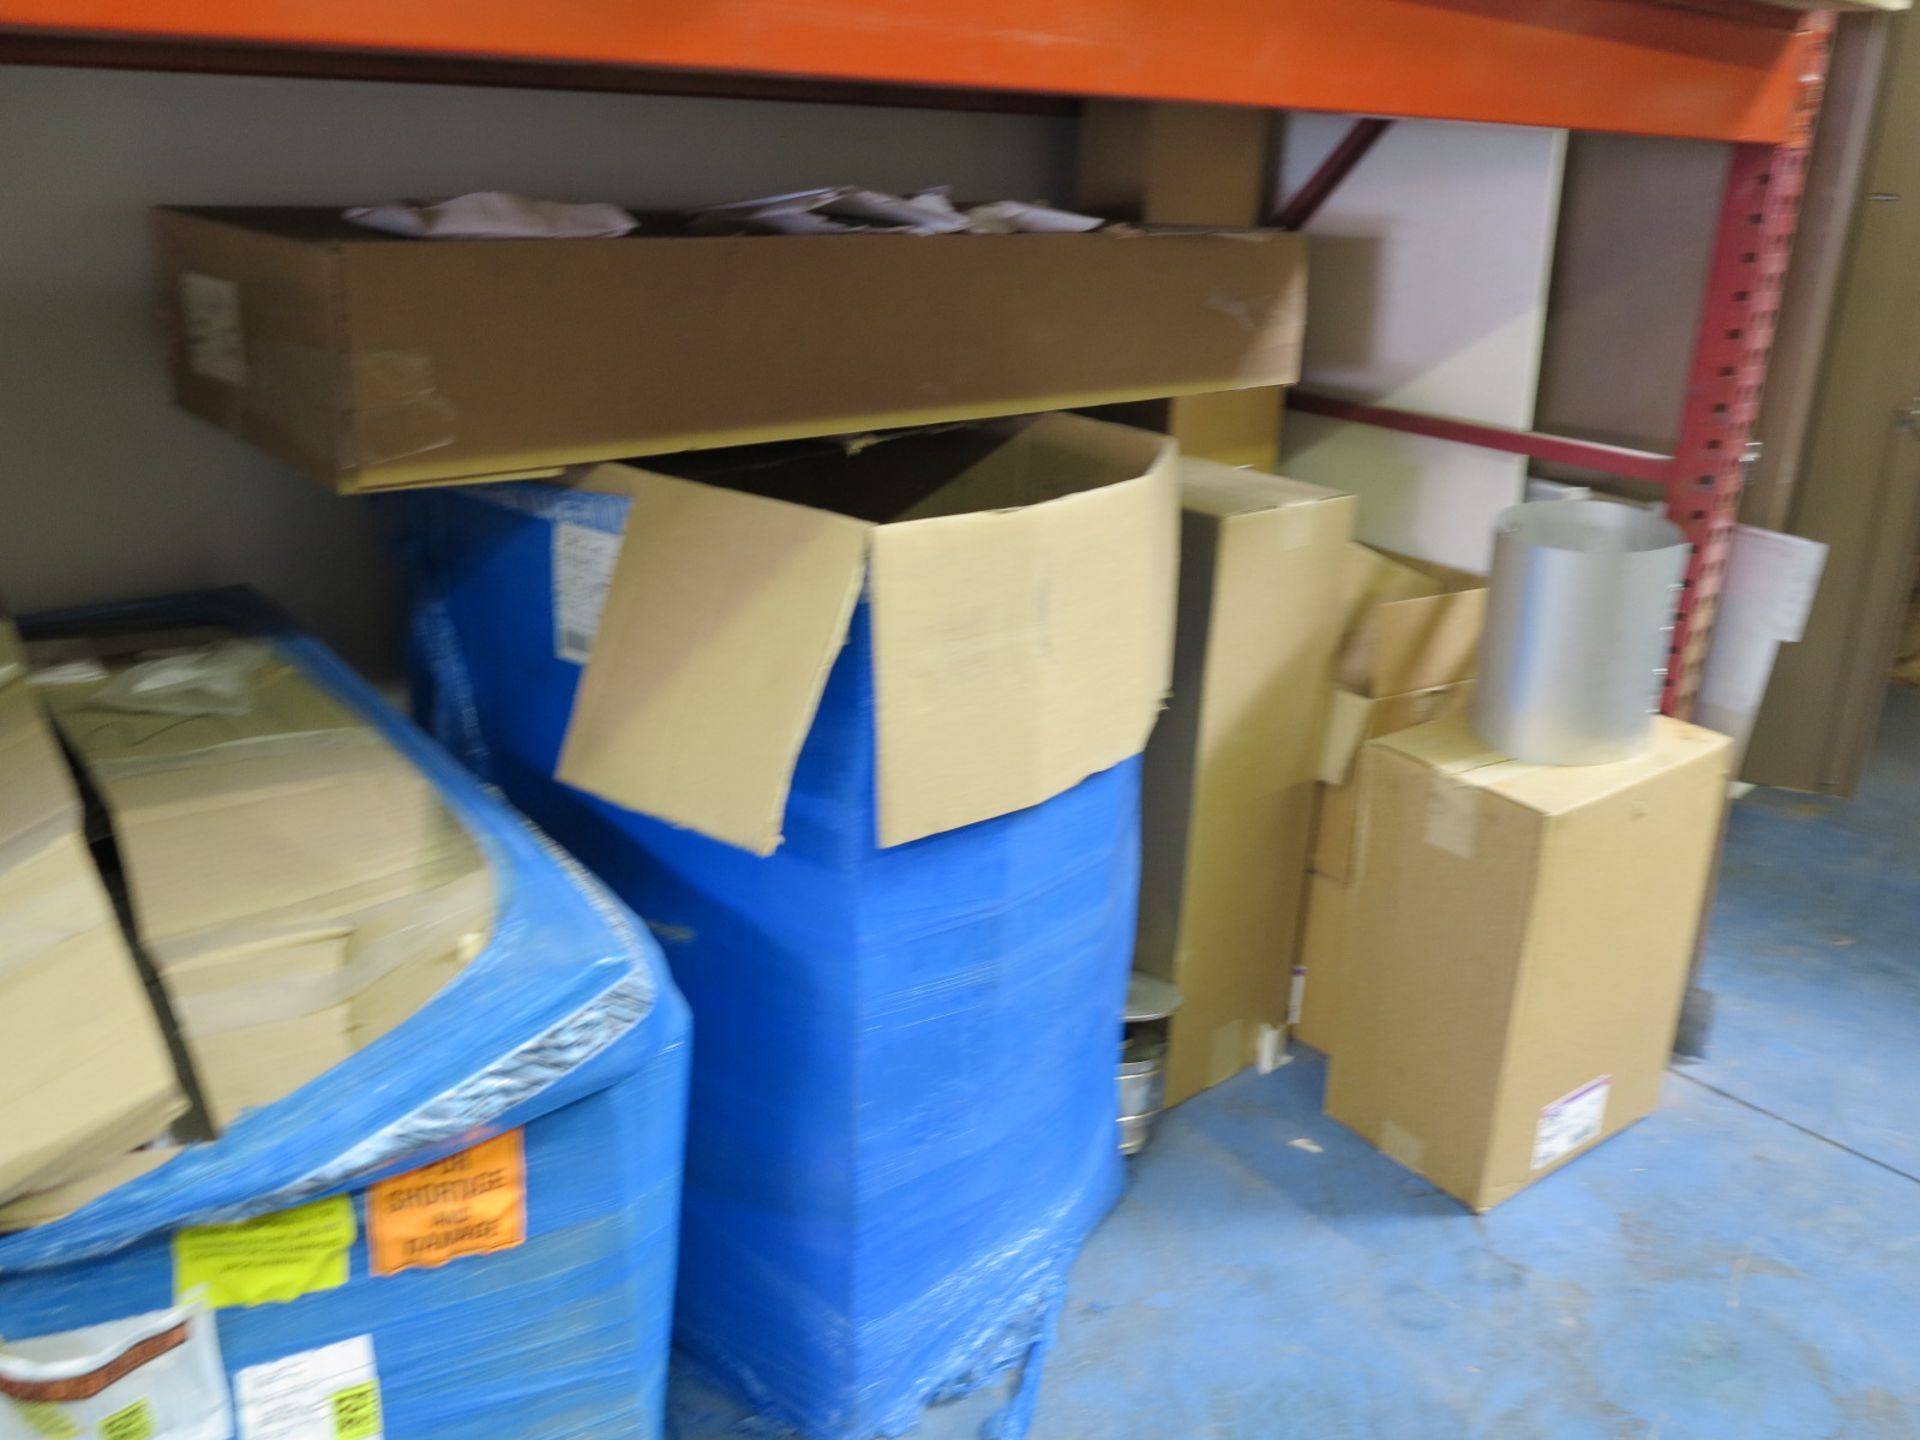 LOT - CONTENTS OF (3) SECTIONS OF PALLET RACKING, NOT INCLUDING TAGGED ITEMS - Image 6 of 9